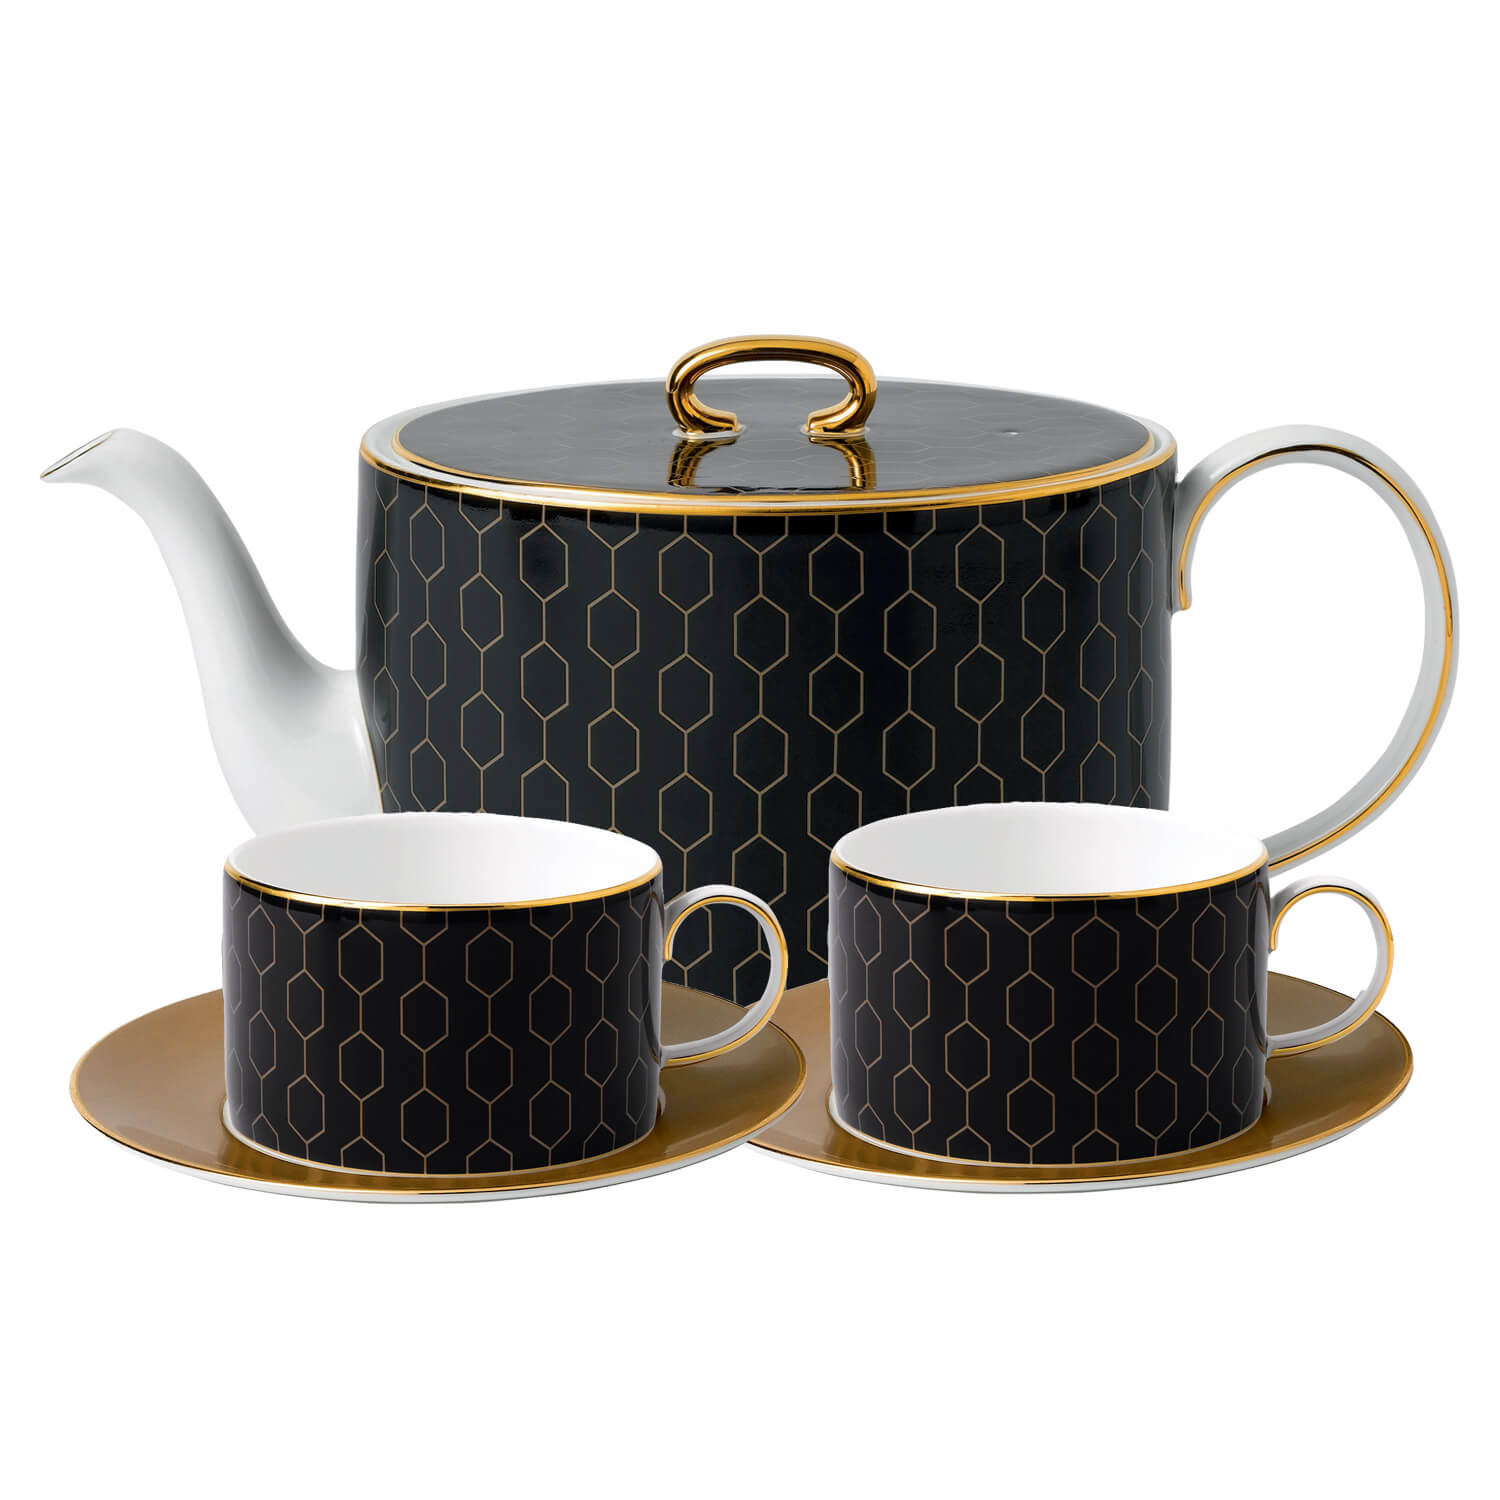 Arris Afternoon Tea Set - A